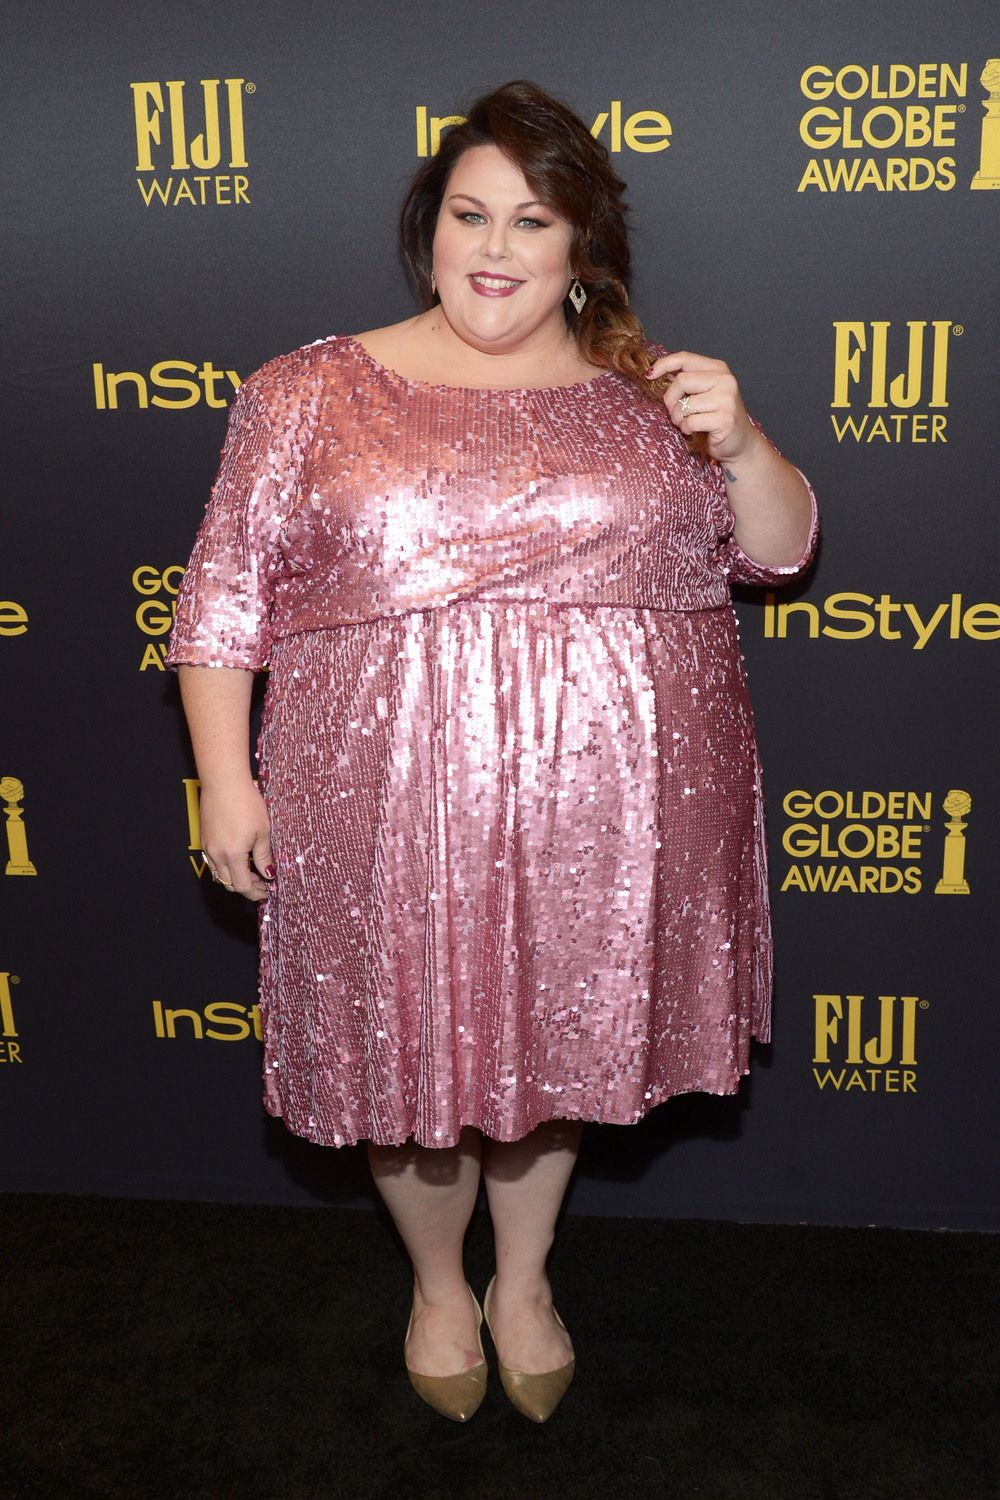 This Is Us Star Chrissy Metz Opens Up About Wearing a Fat Suit This Is Us Star Chrissy Metz Opens Up About Wearing a Fat Suit new picture